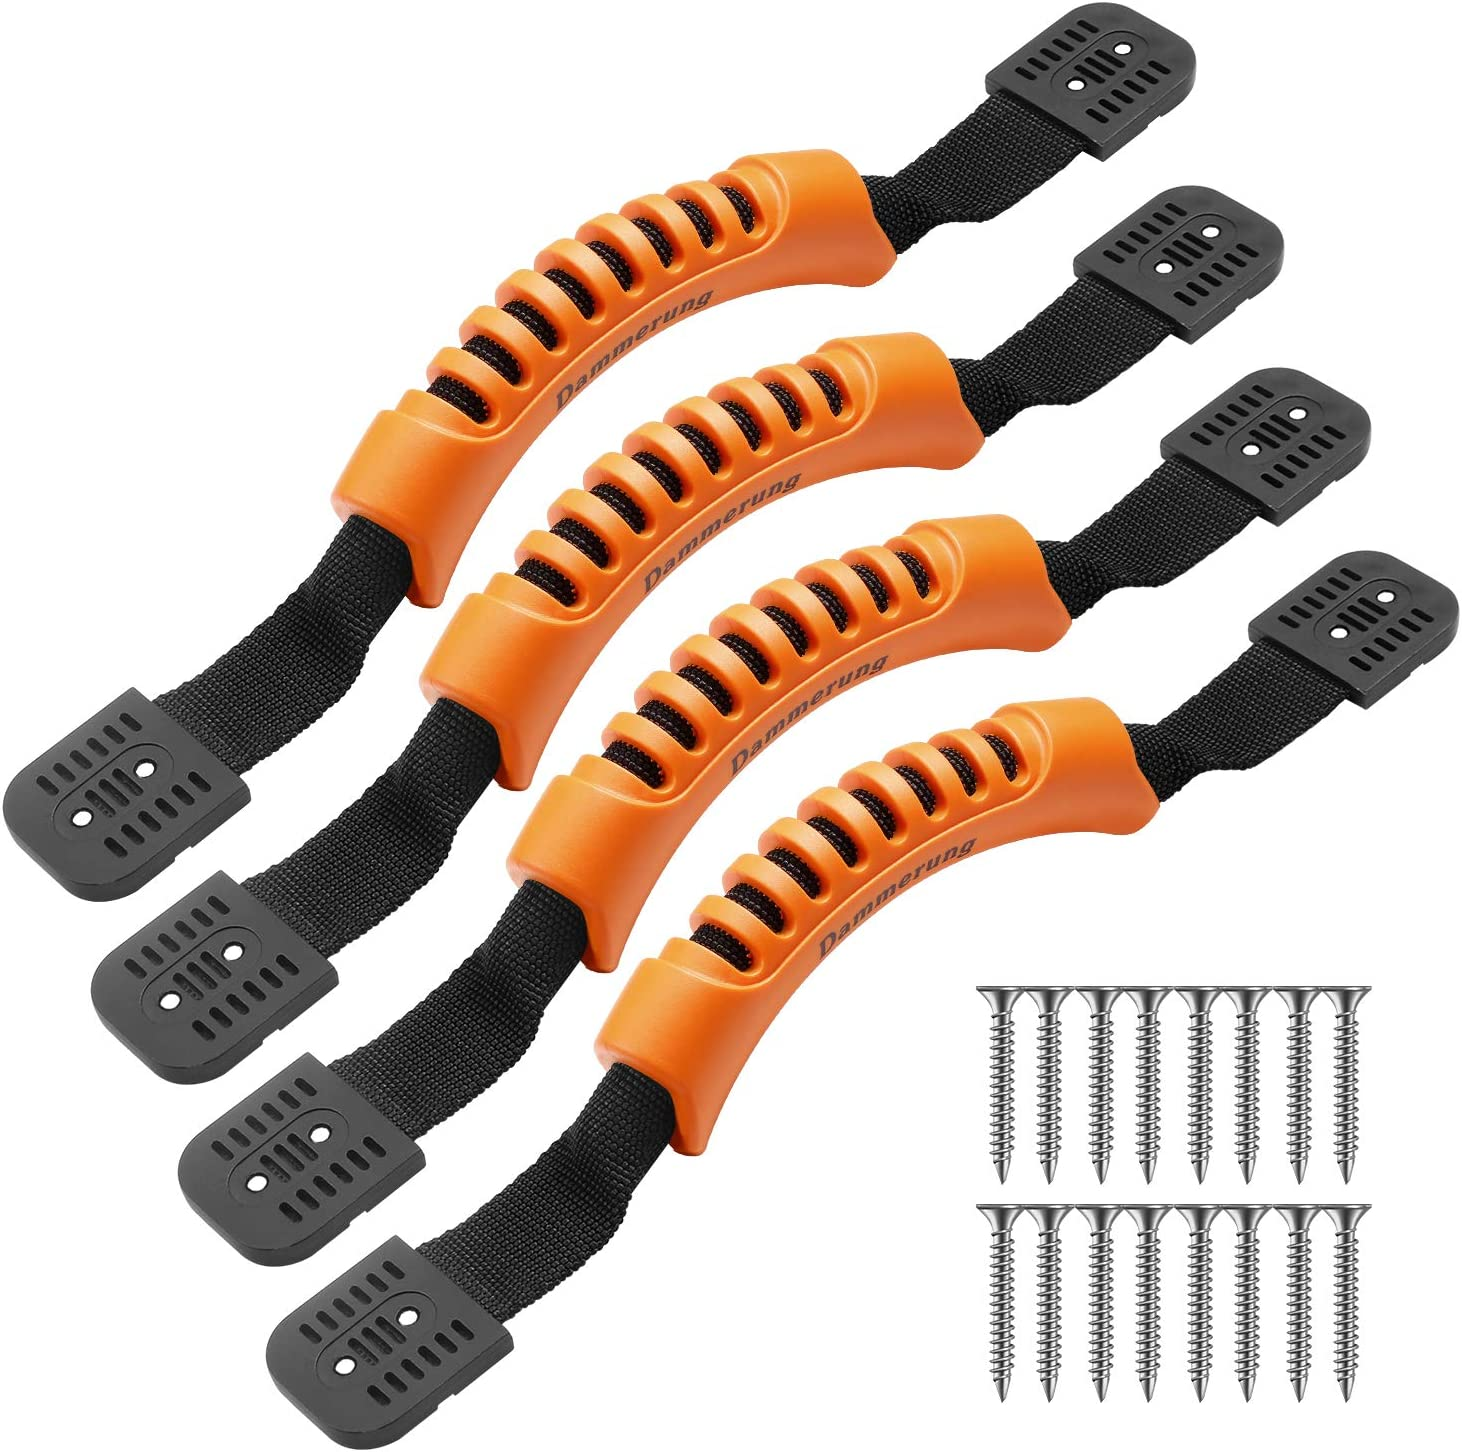 Dammerung 4 Pcs Kayak Carry Handles with Screws Canoe Boat Side Mount Carry Replacement Handles(Slightly Flexible Rubber Handles&600D Nylon Strap)